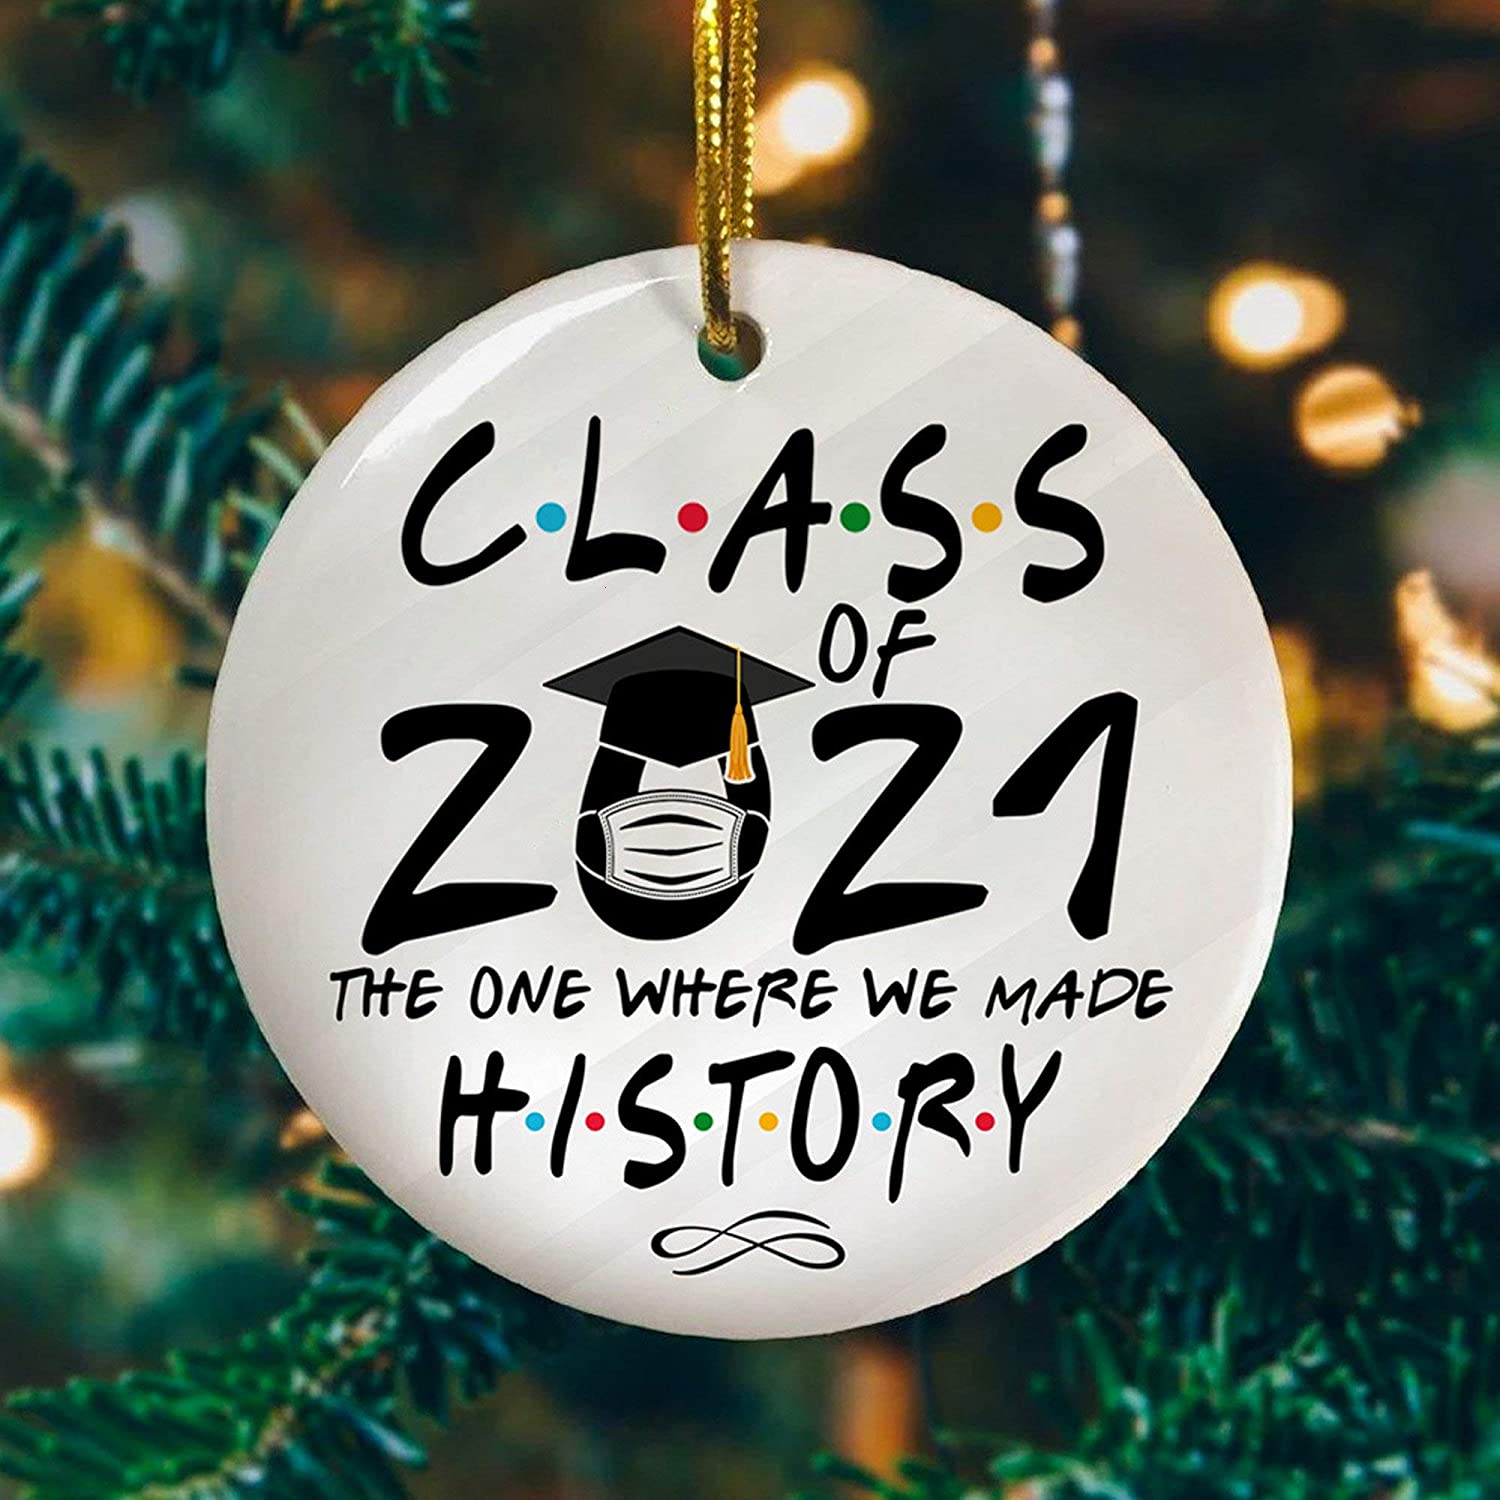 Bellarmine College Prep Christmas Ornaments 2021 Amazon Com Class Of 2021 The One Where We Made History Decor Christmas Ornament燙hristmas Ornament 2020 Home Kitchen